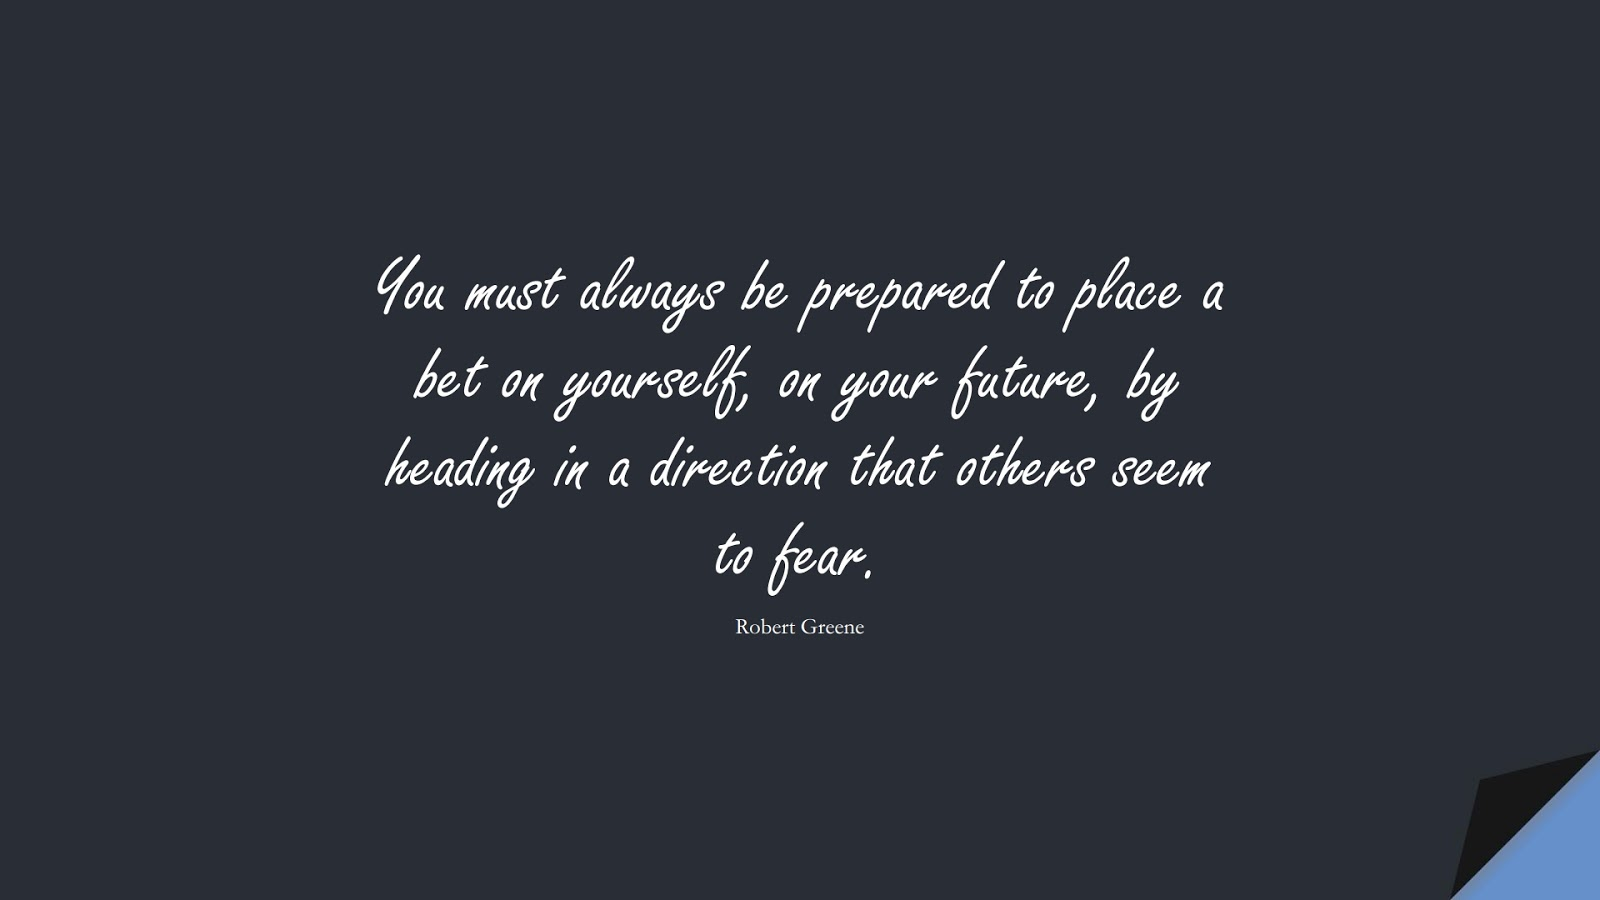 You must always be prepared to place a bet on yourself, on your future, by heading in a direction that others seem to fear. (Robert Greene);  #CourageQuotes